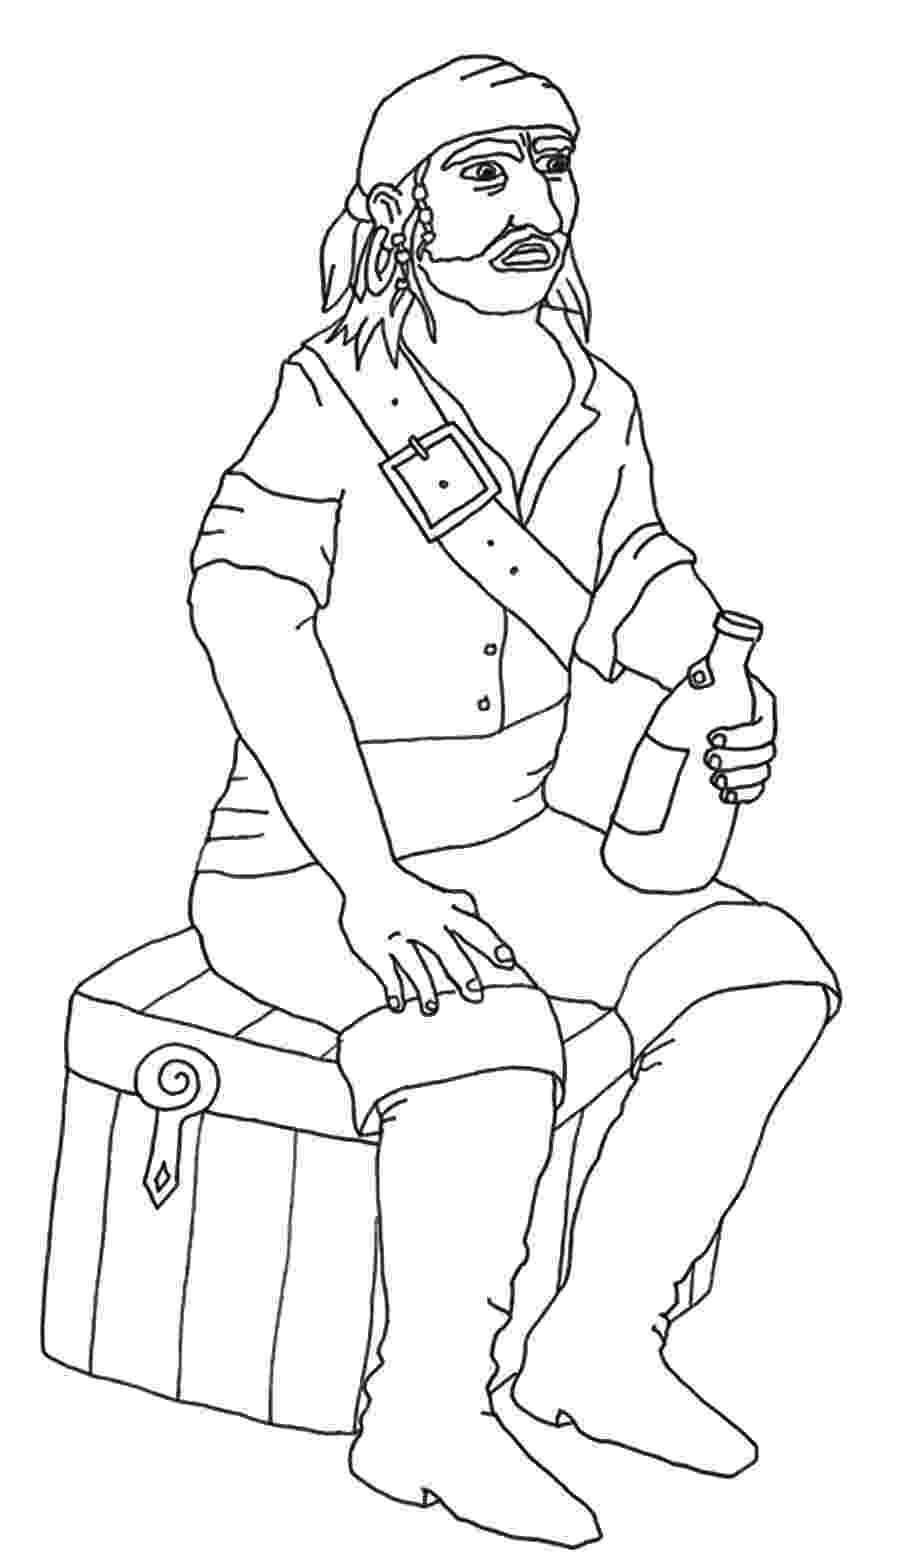 pirates coloring pages pirates celebrate christmas coloring page free printable pirates coloring pages